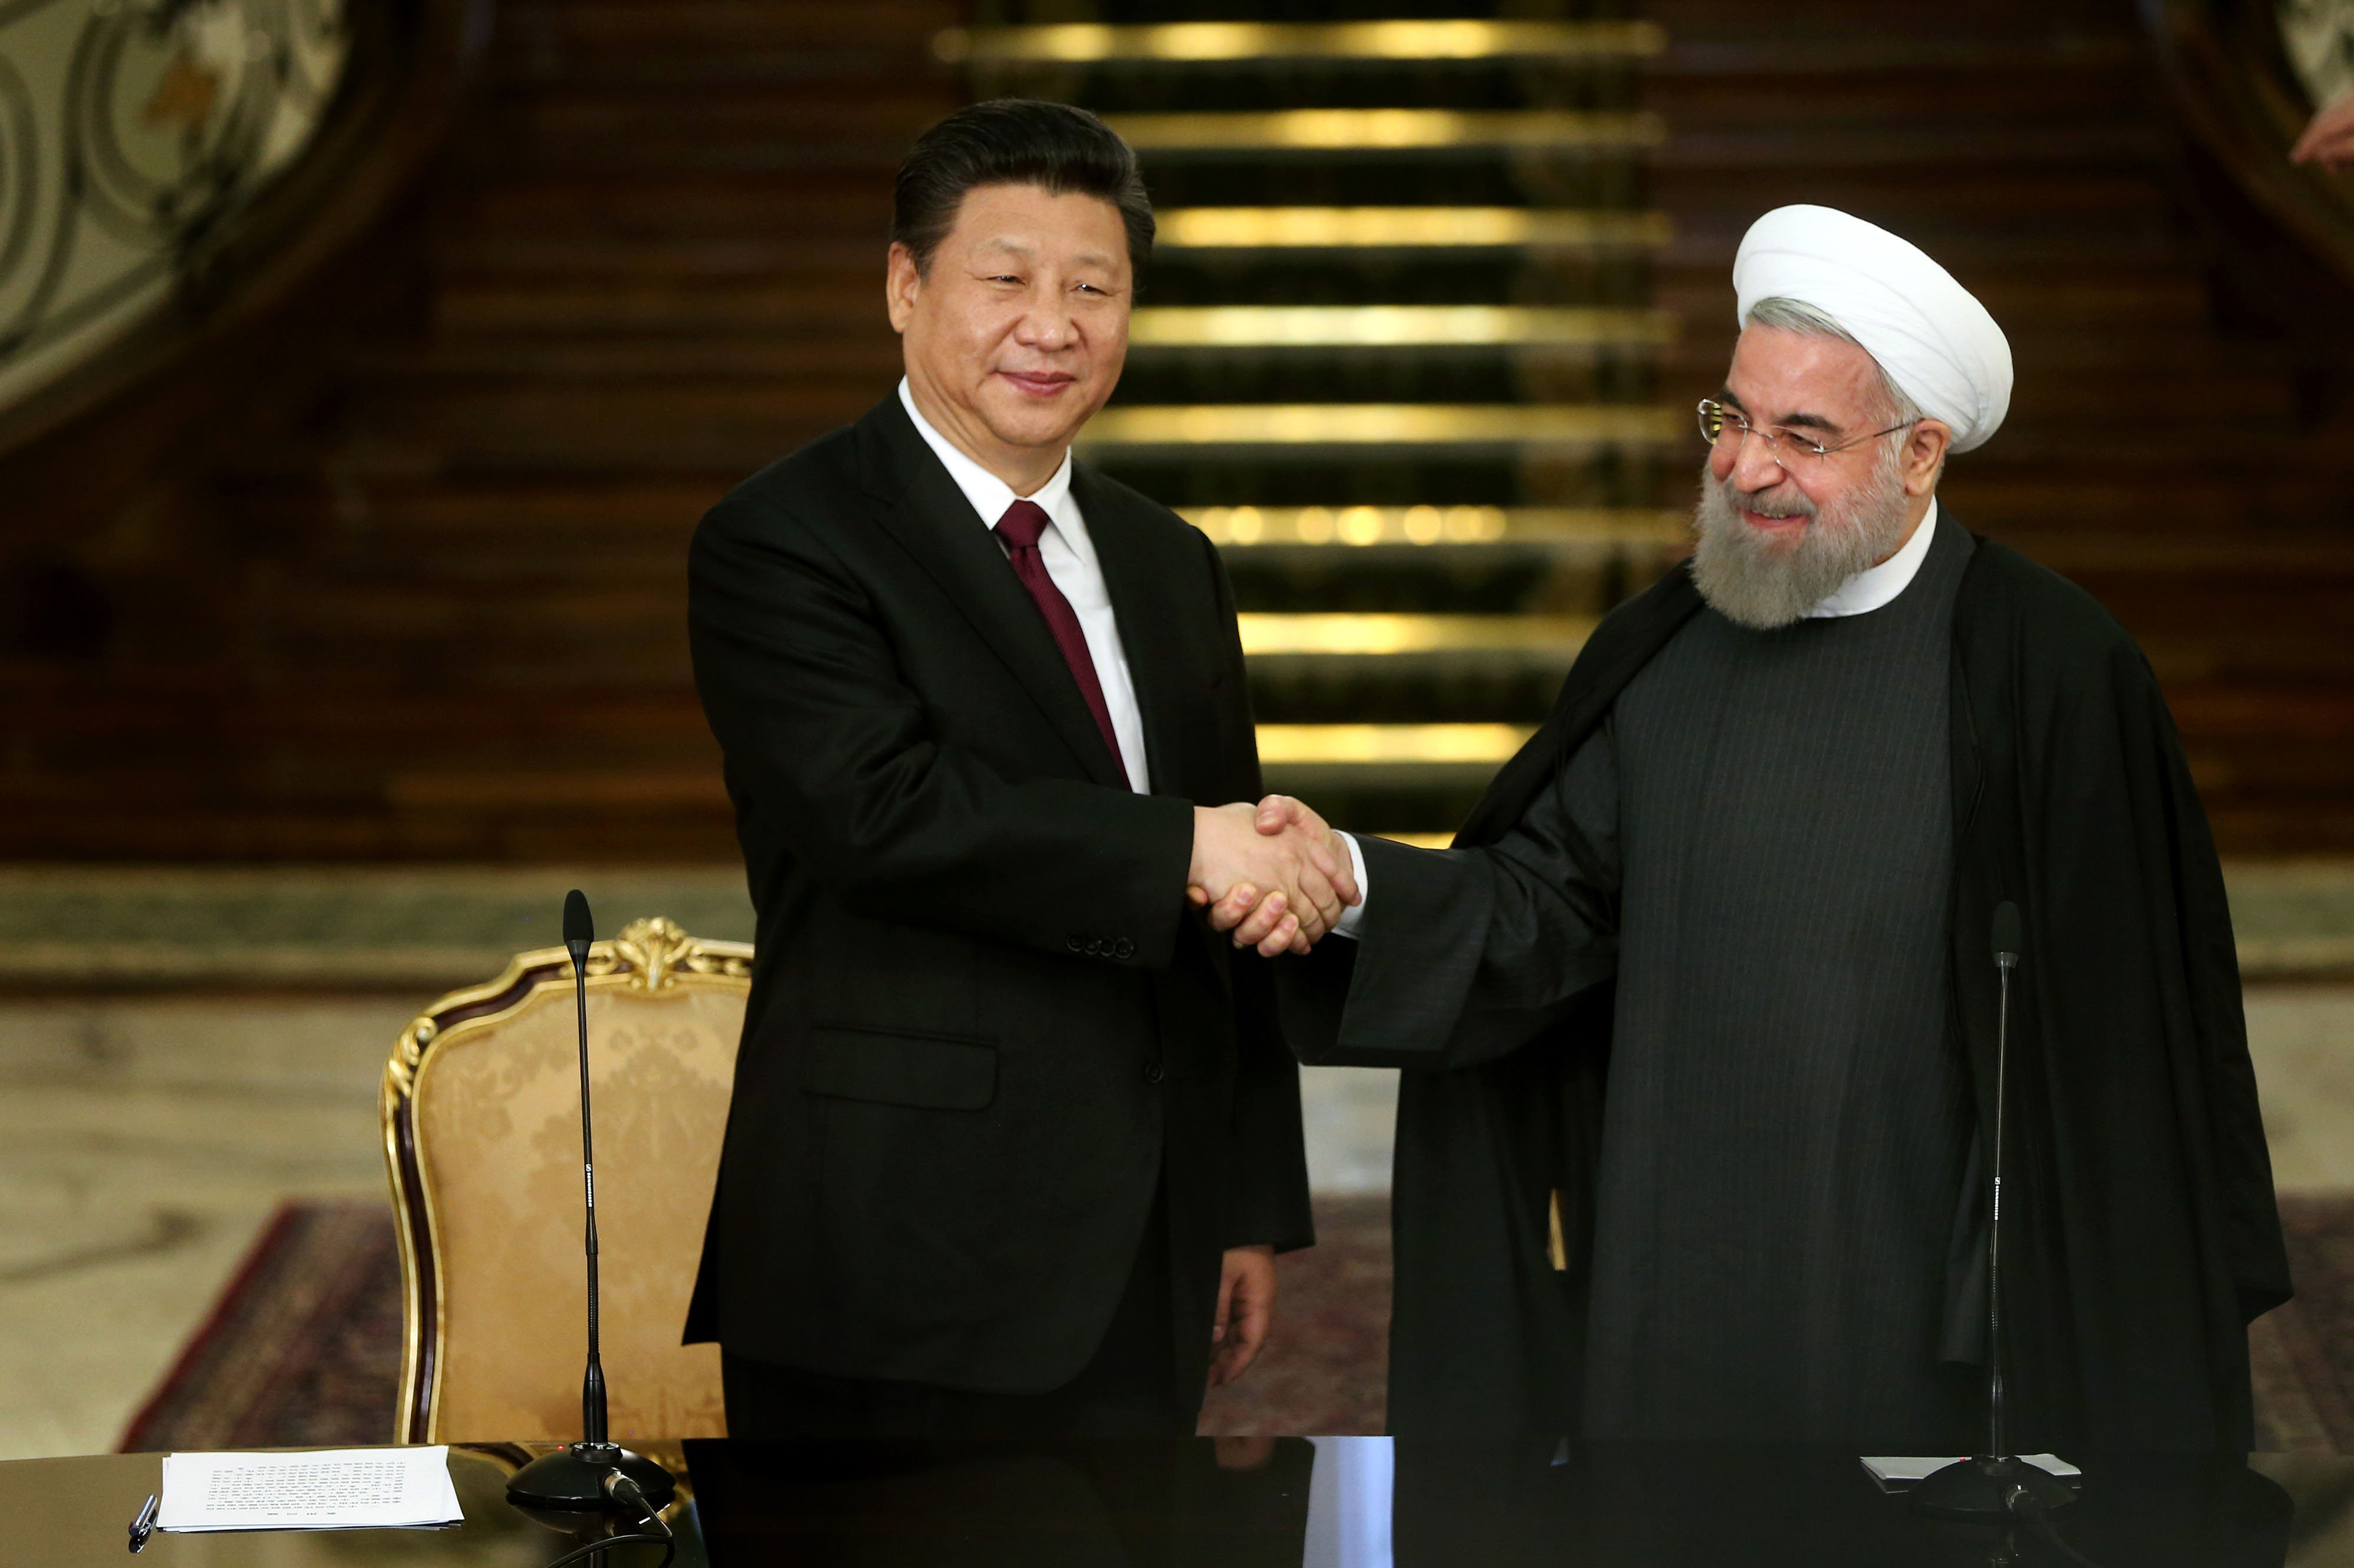 Iranian President Hassan Rouhani, right, and his Chinese counterpart Xi Jinping shake hands at the conclusion of their joint press conference at the Saadabad Palace in Tehran, Iran, Saturday, Jan. 23, 2016